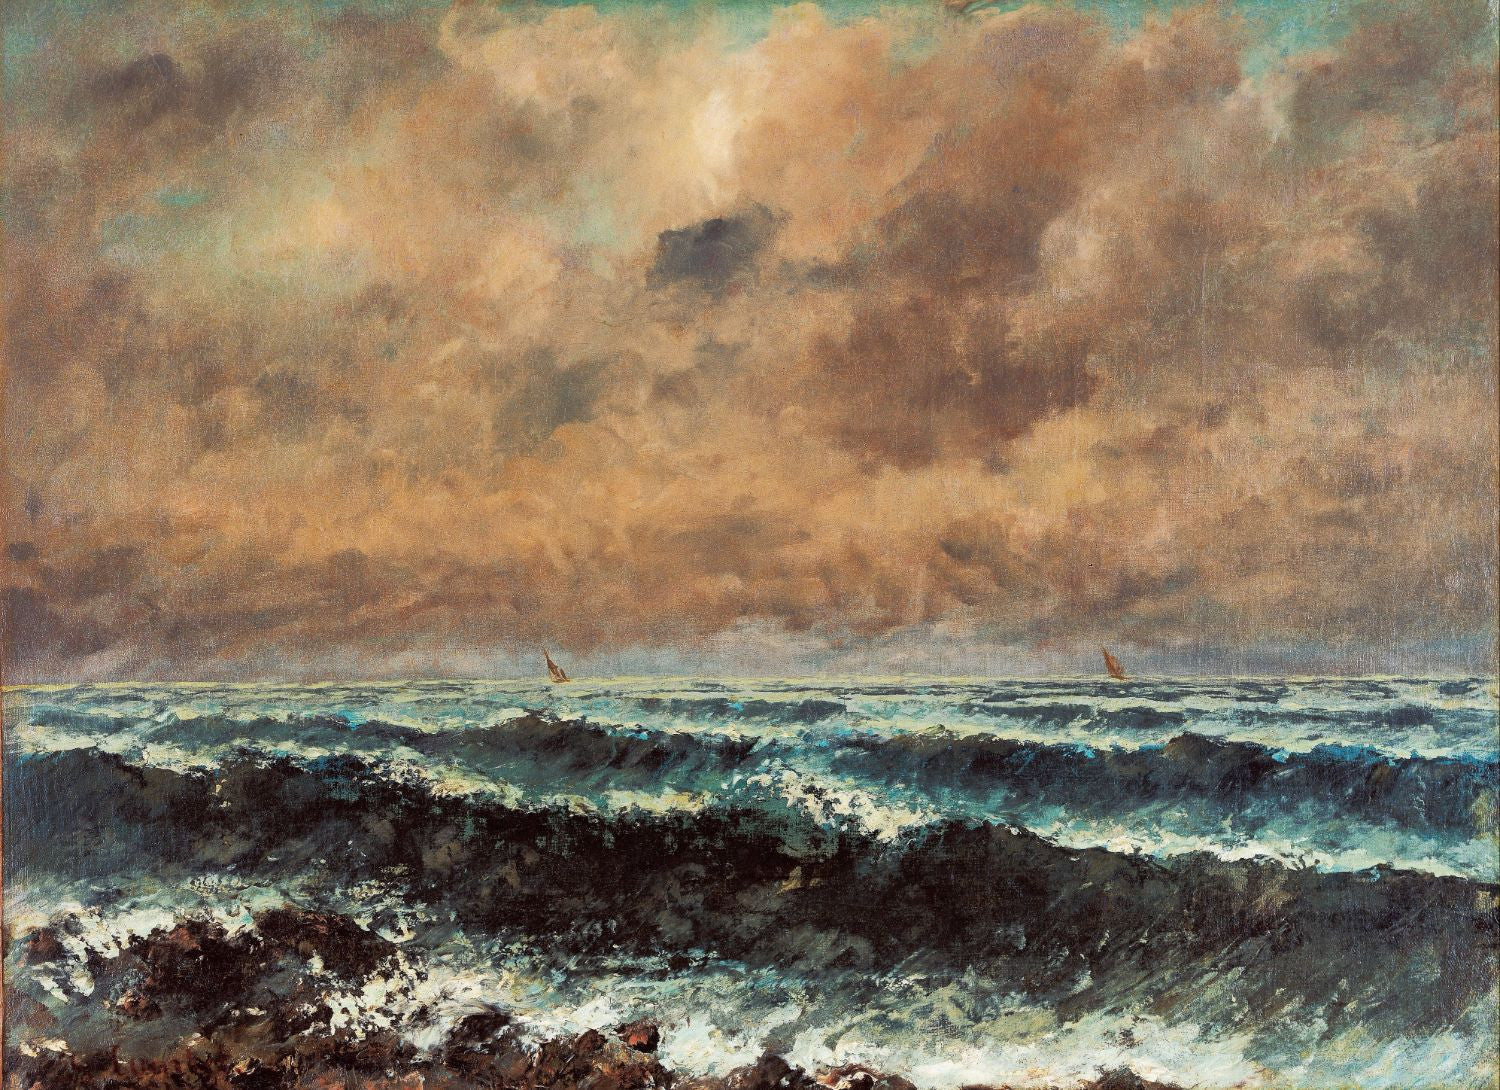 Gustave Courbet | Buy Posters, Frames, Canvas, Digital Art & Large Size Prints Of The Famous Old Master's Artworks